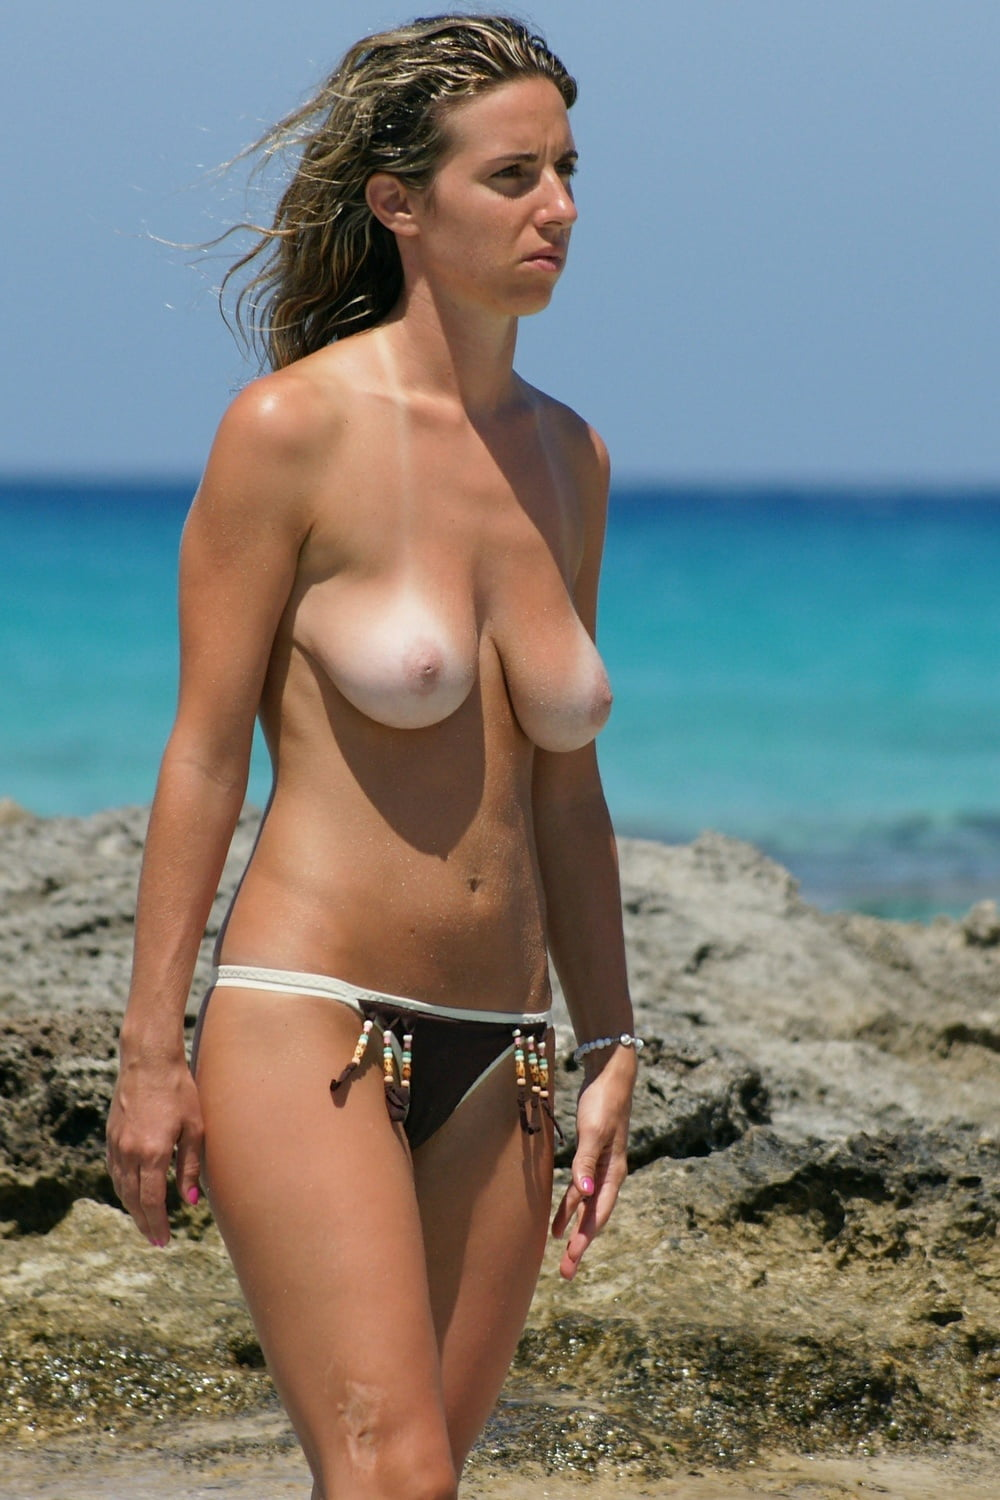 Floppy Saggy Puffy Nipples Beach 25 - 14 Imgs - Xhamstercom-2642